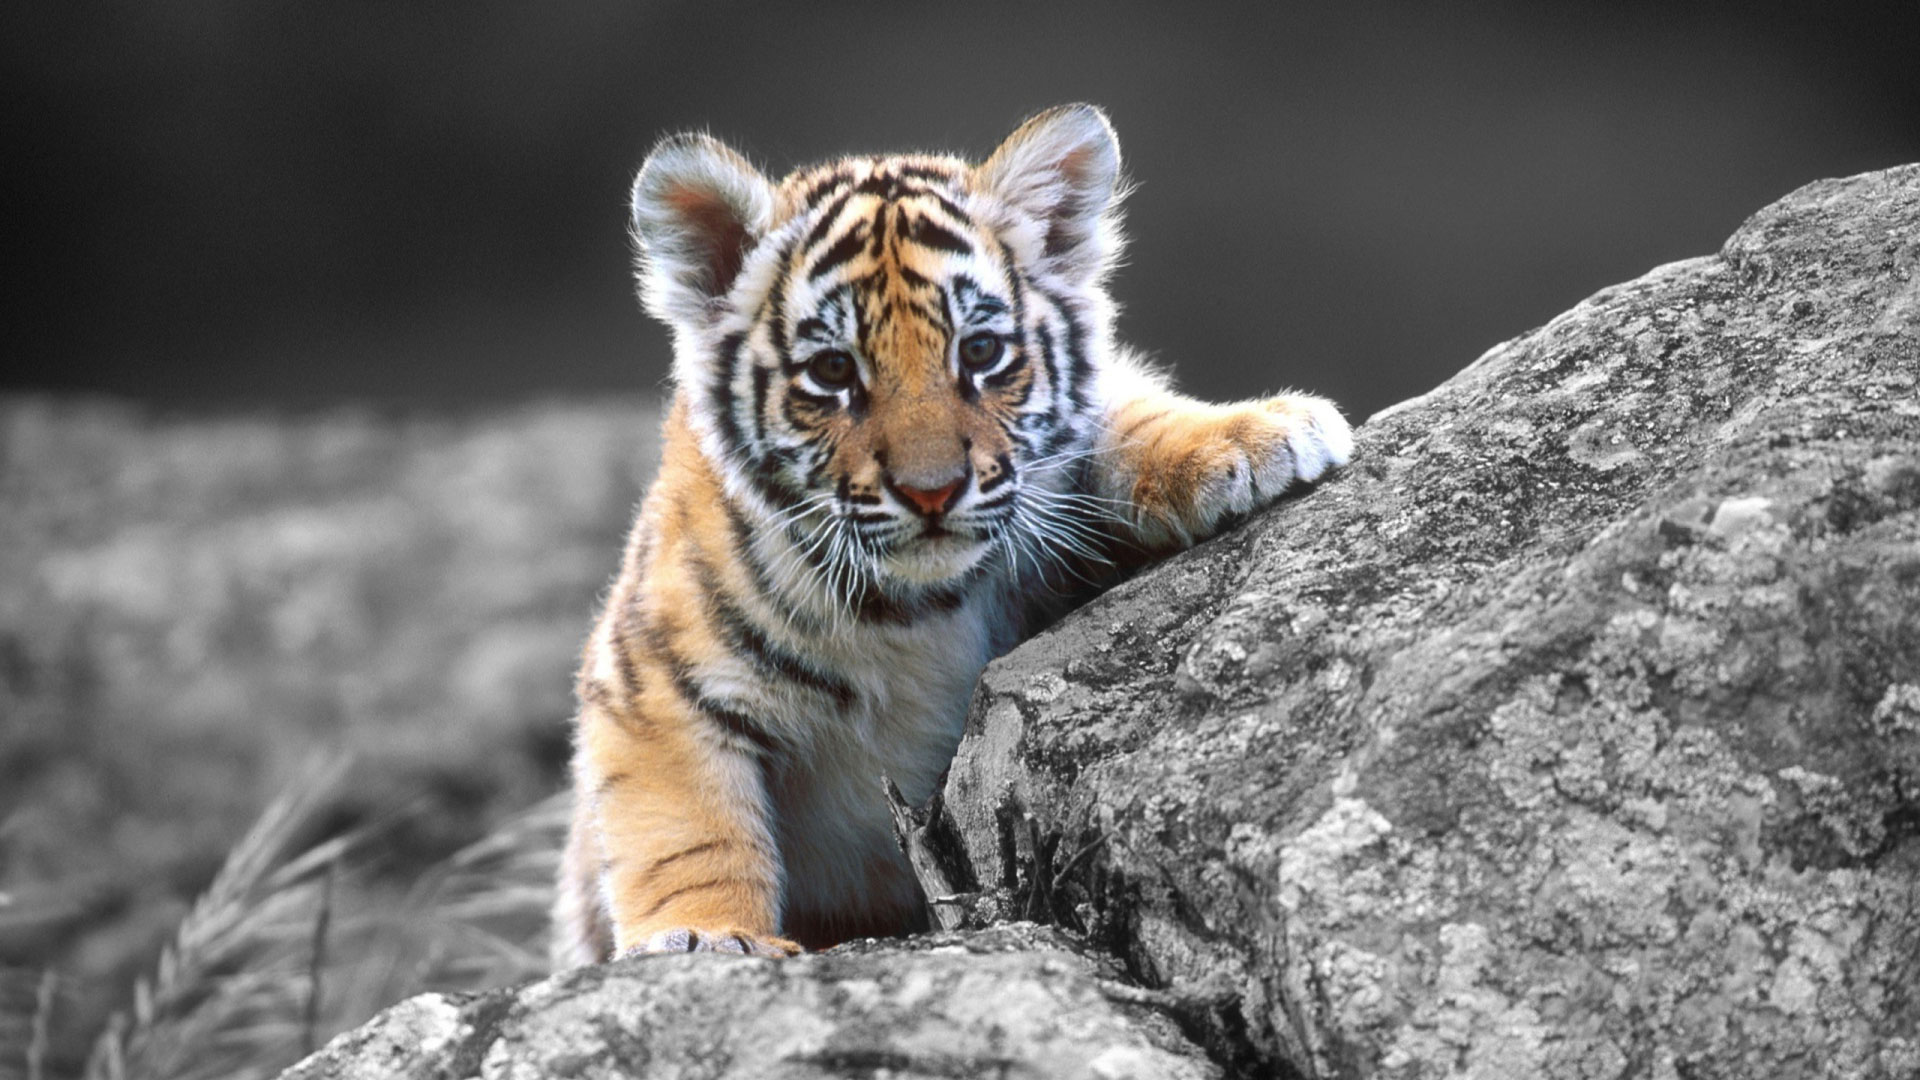 The term paper tiger